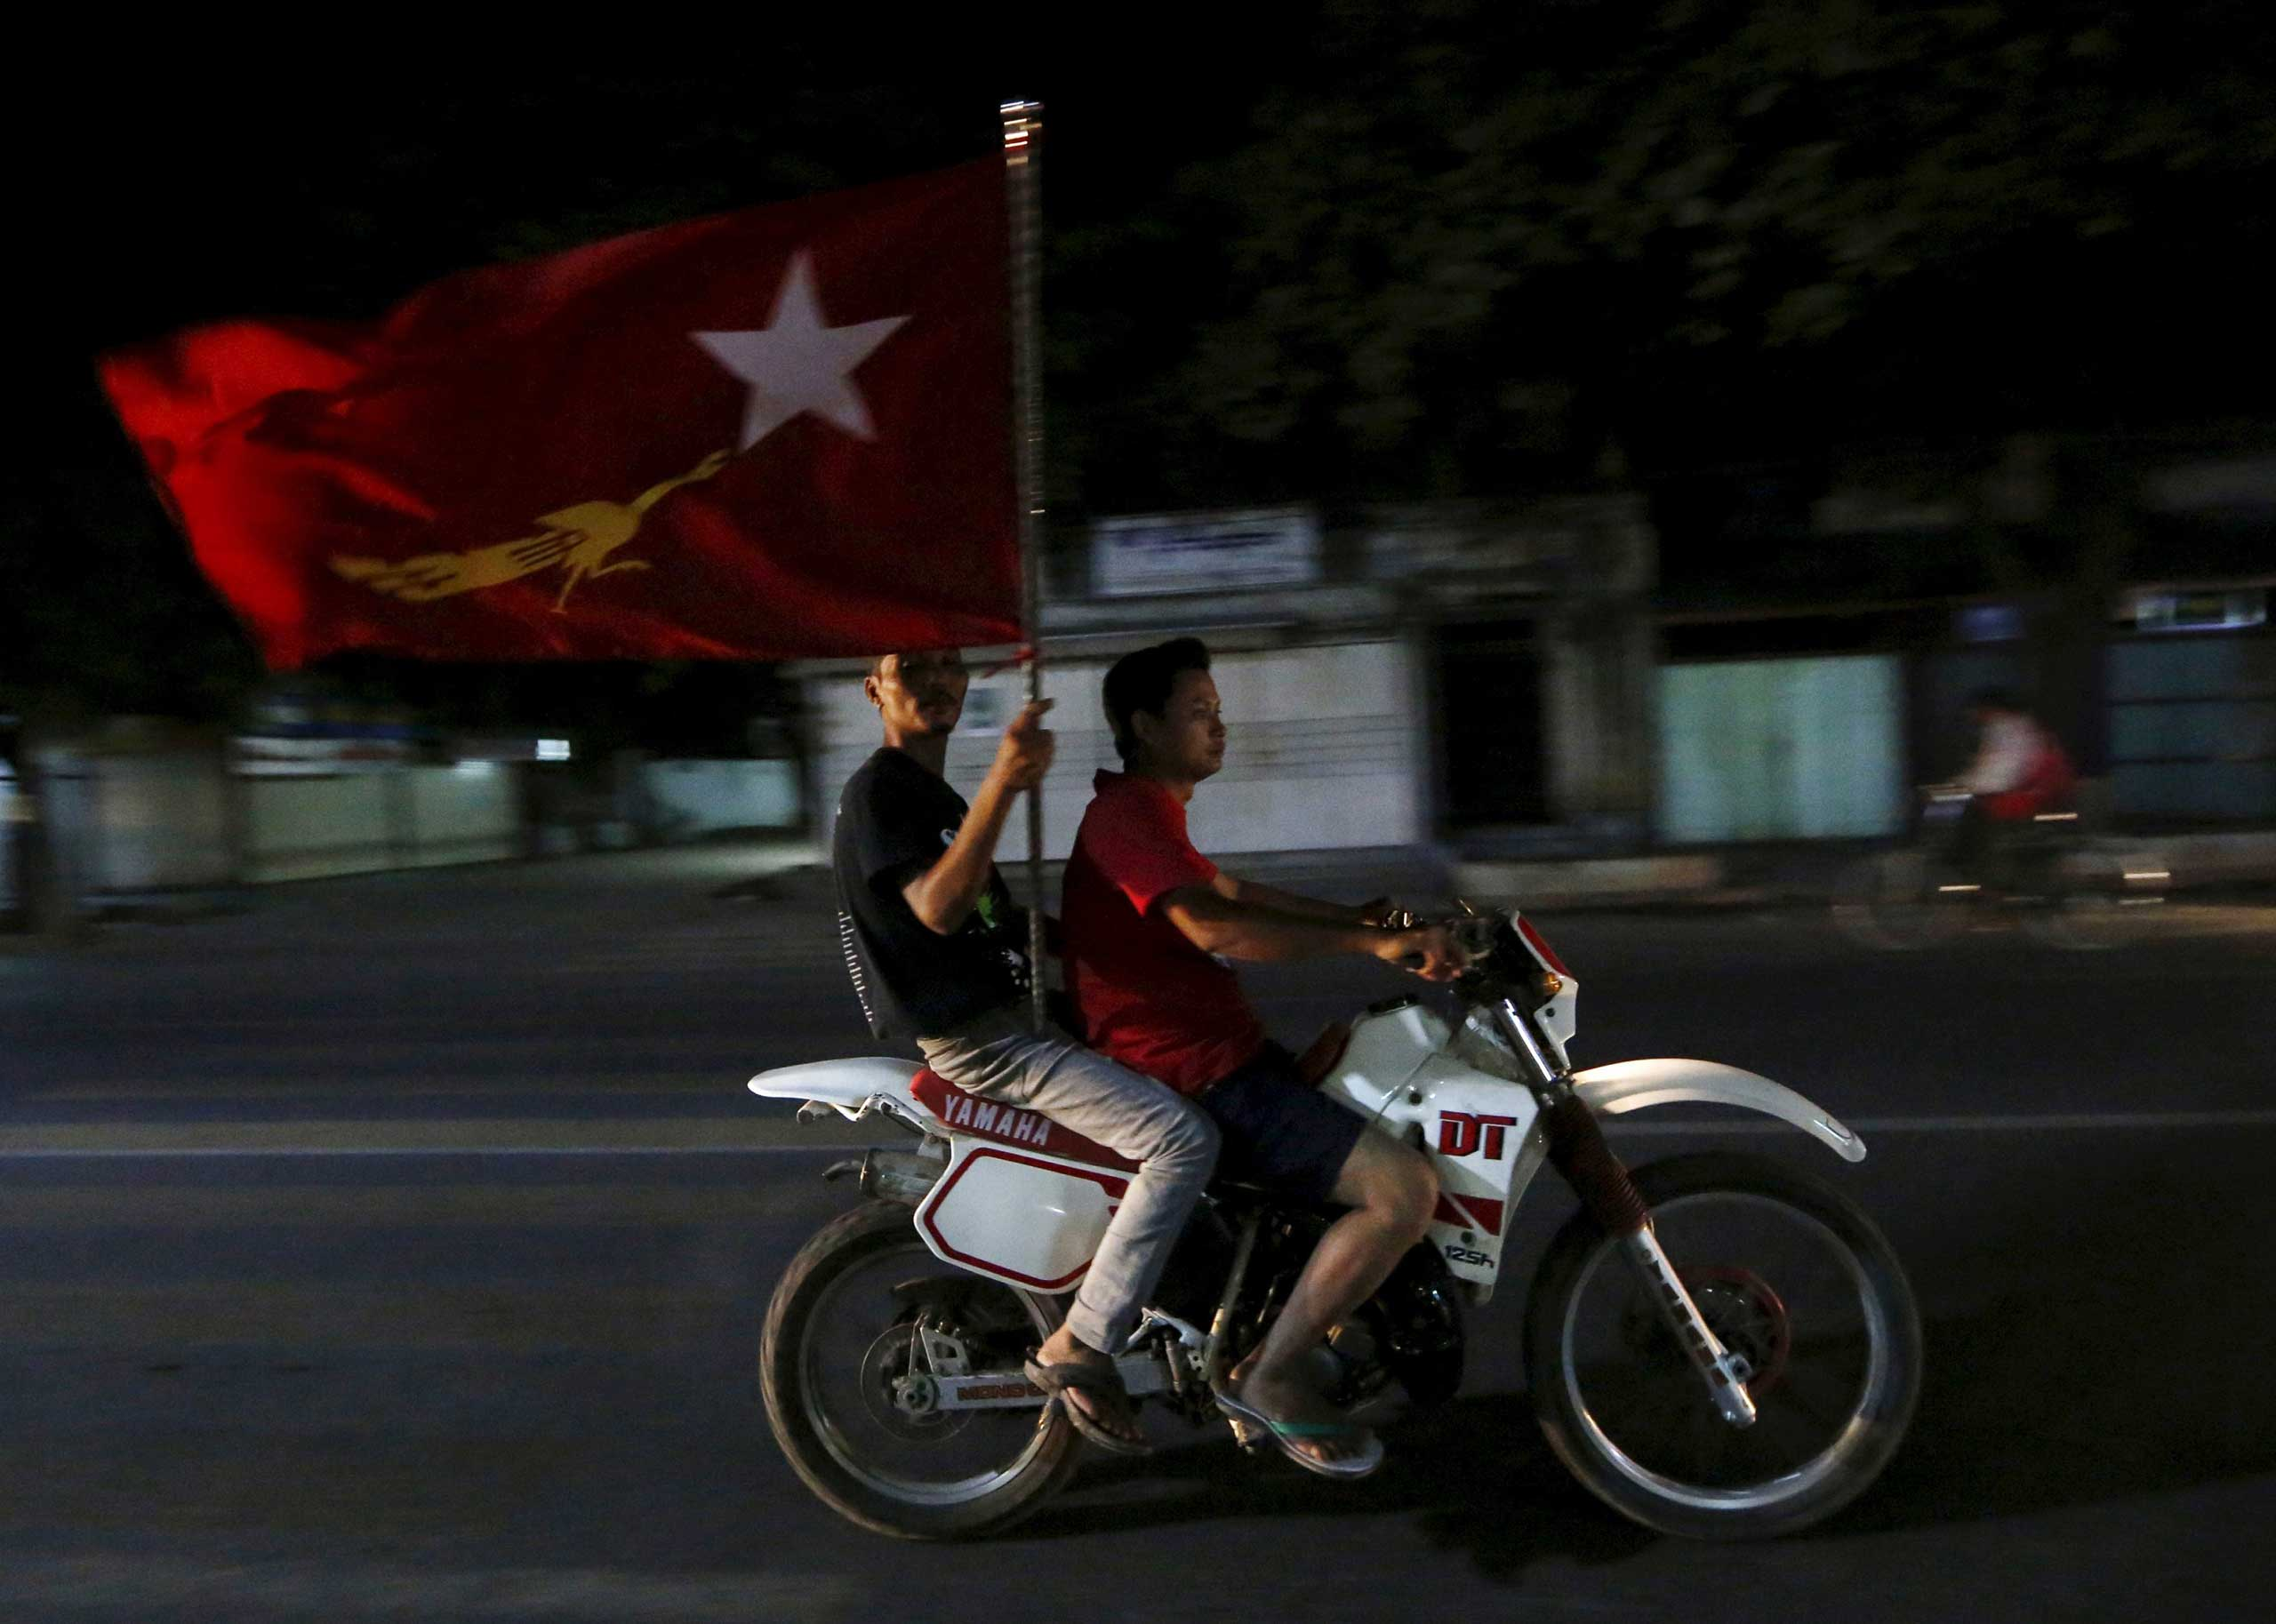 Supporters of Aung San Suu Kyi carry a National League for Democracy (NLD) flag through the streets of Mandalay, Burma, on Nov. 9, 2015.